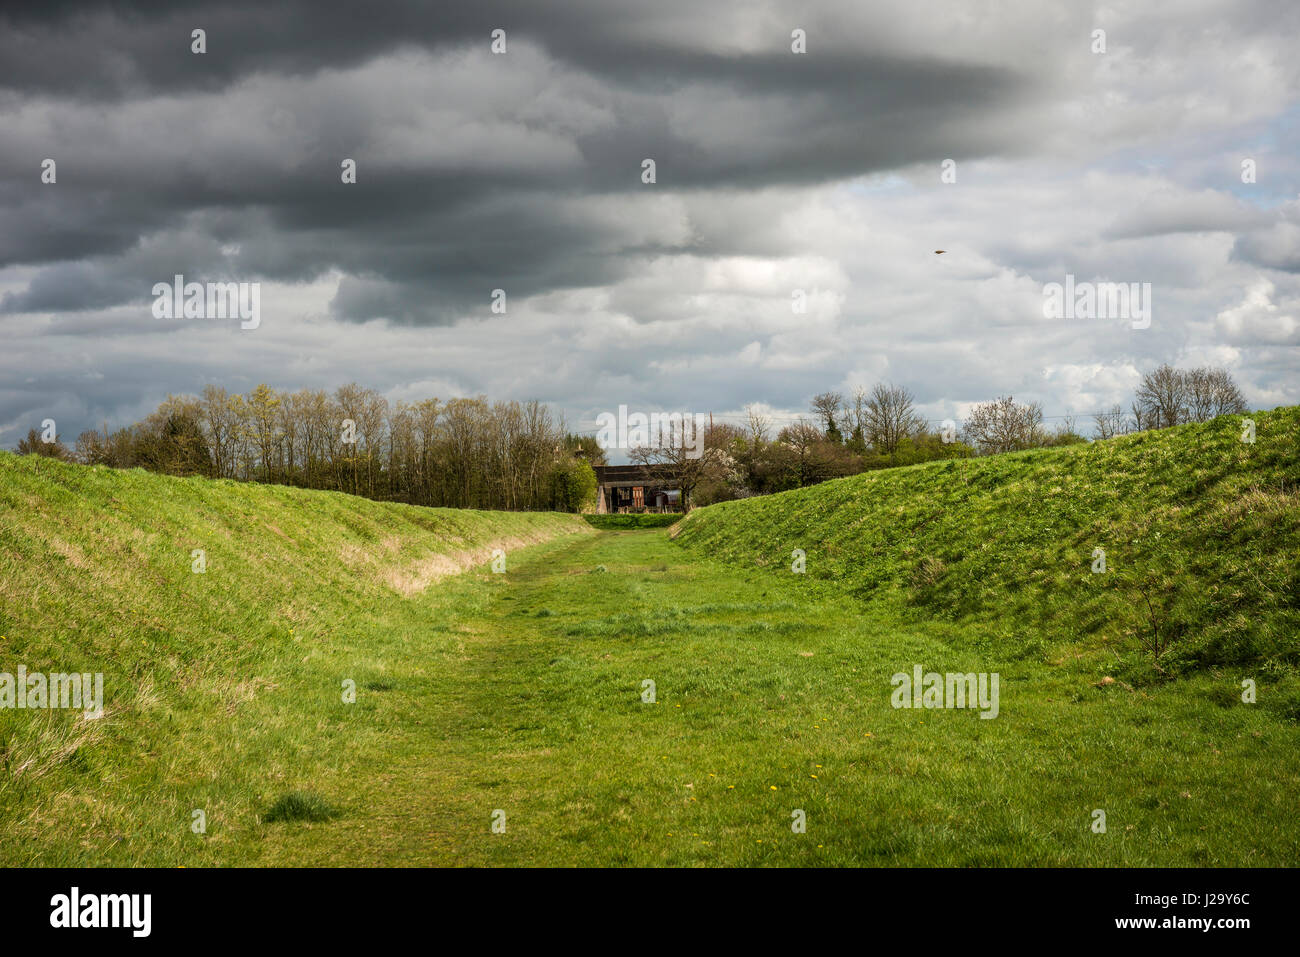 Closed section of the old Bedford and Cambridge Railway line near Longstowe, Cambridgeshire, UK - Stock Image